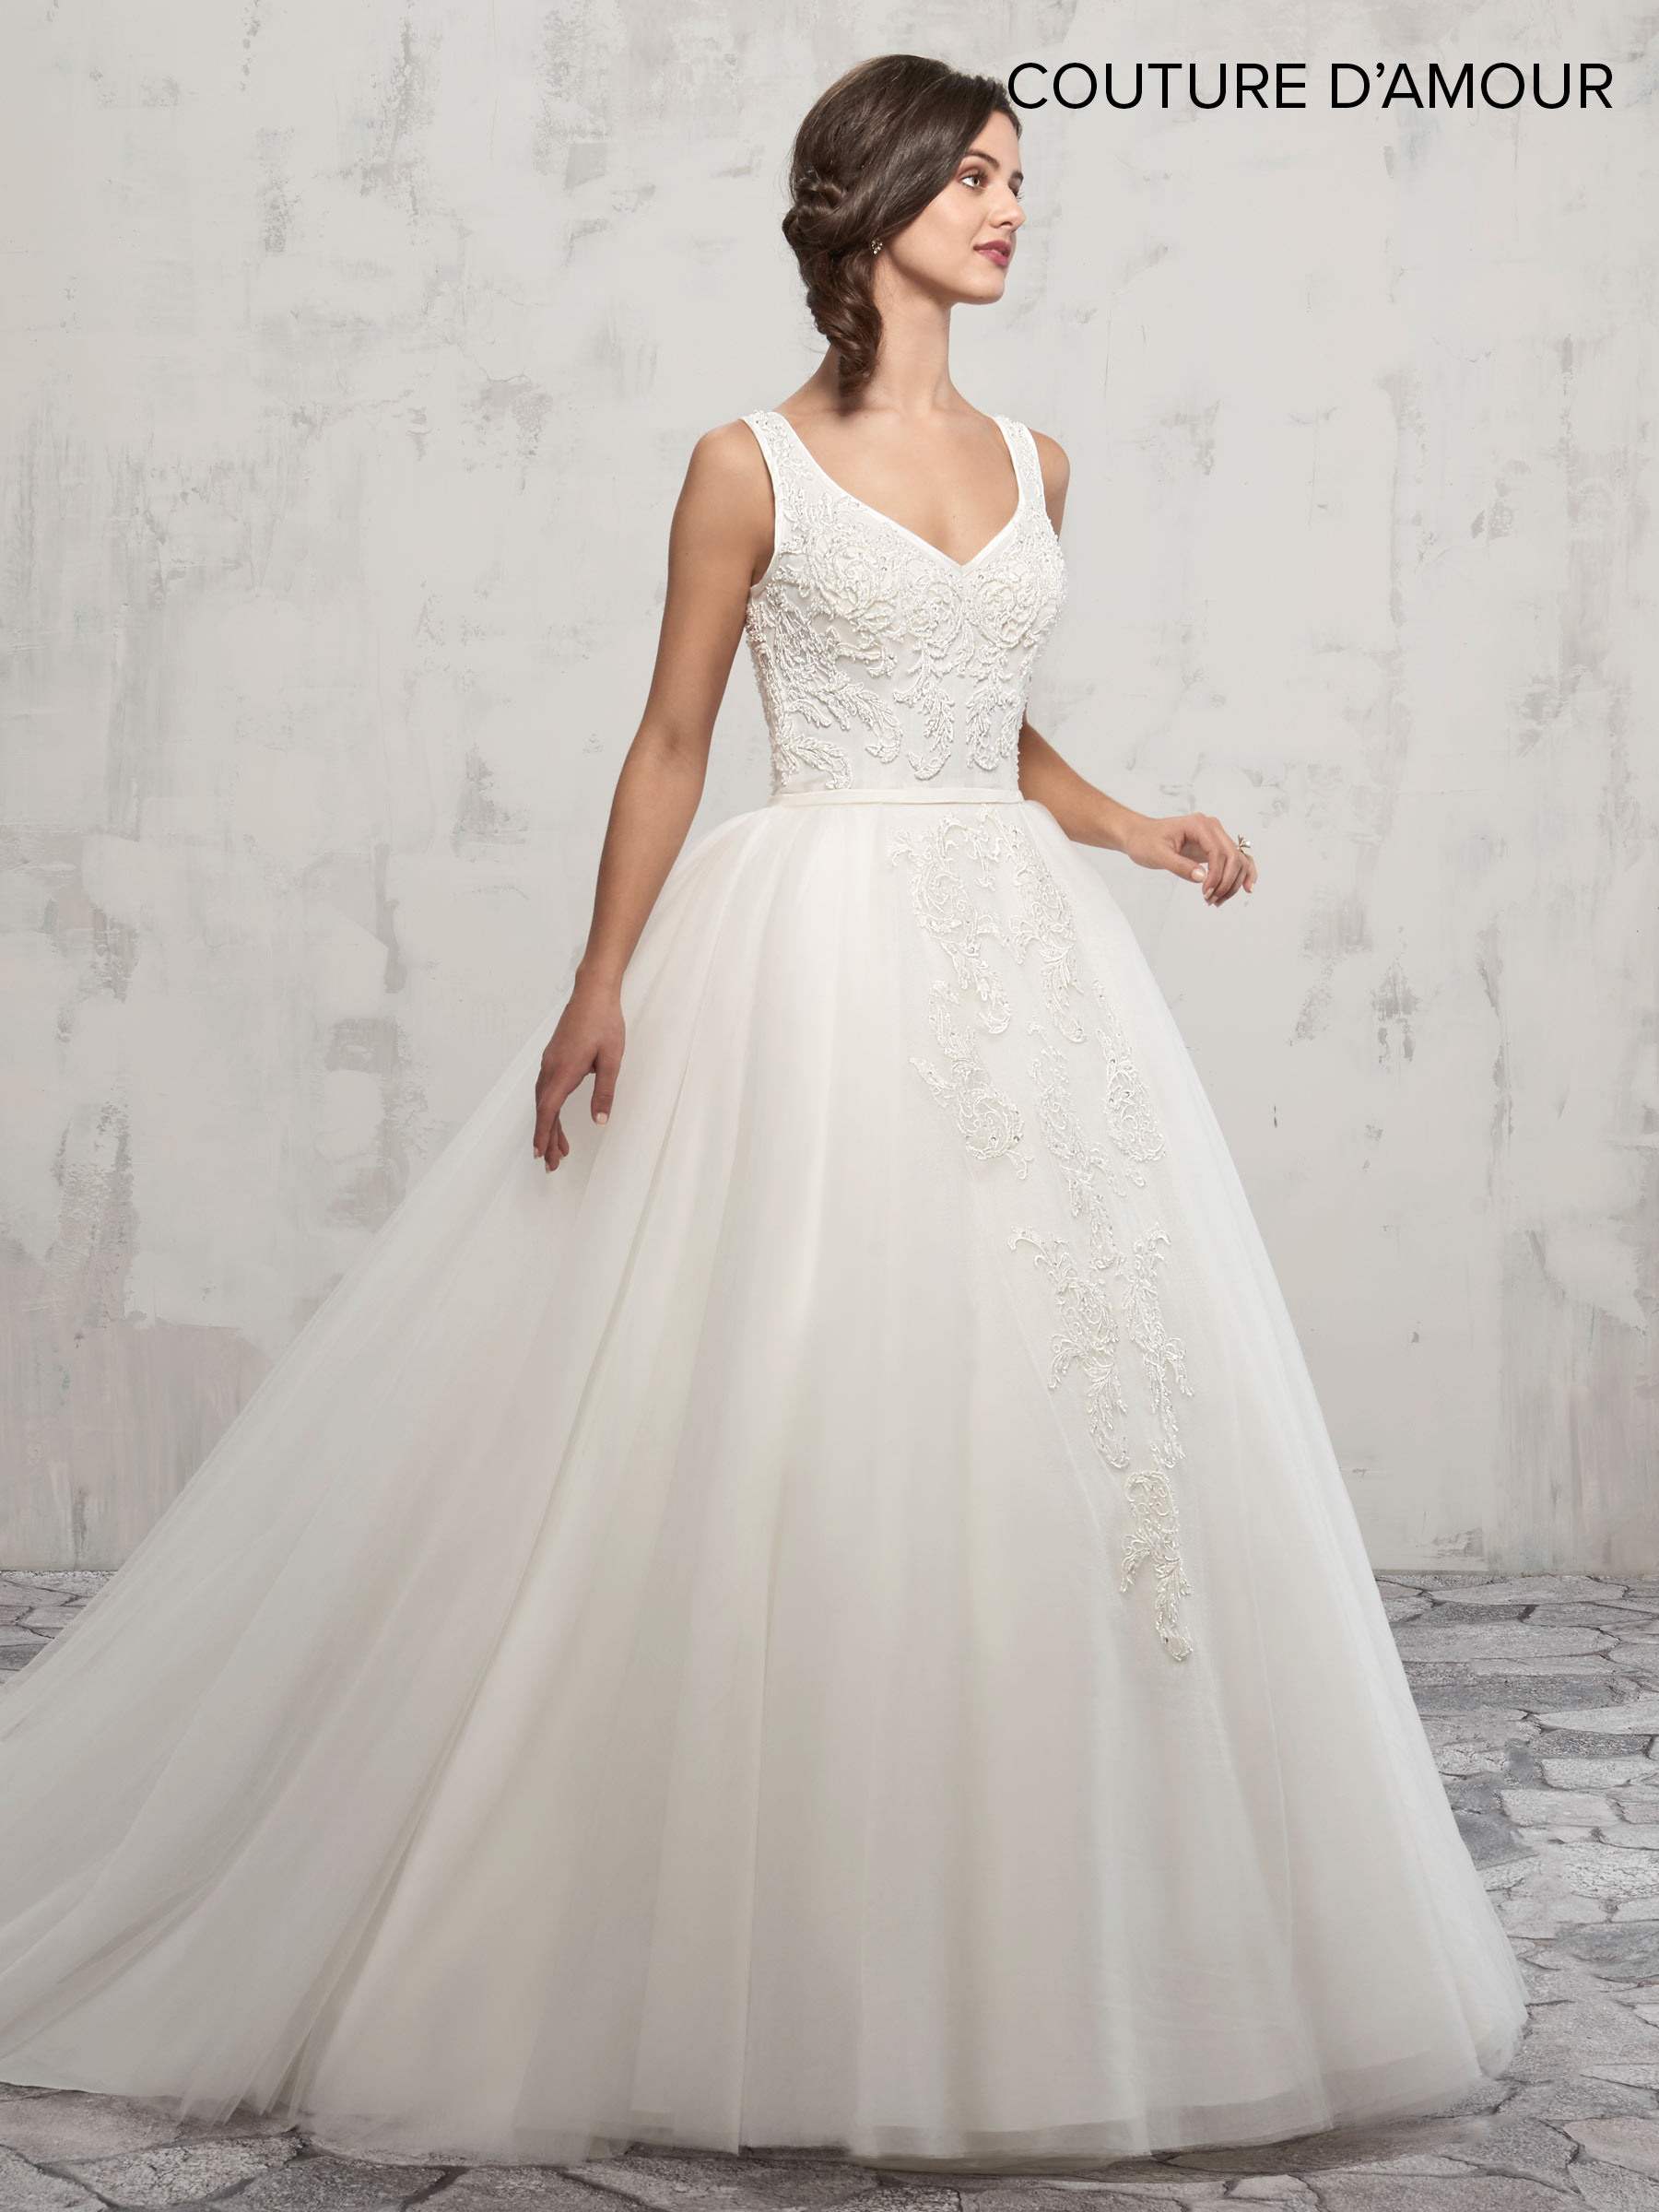 Couture Damour Bridal Dresses | Couture d'Amour | Style - MB4007